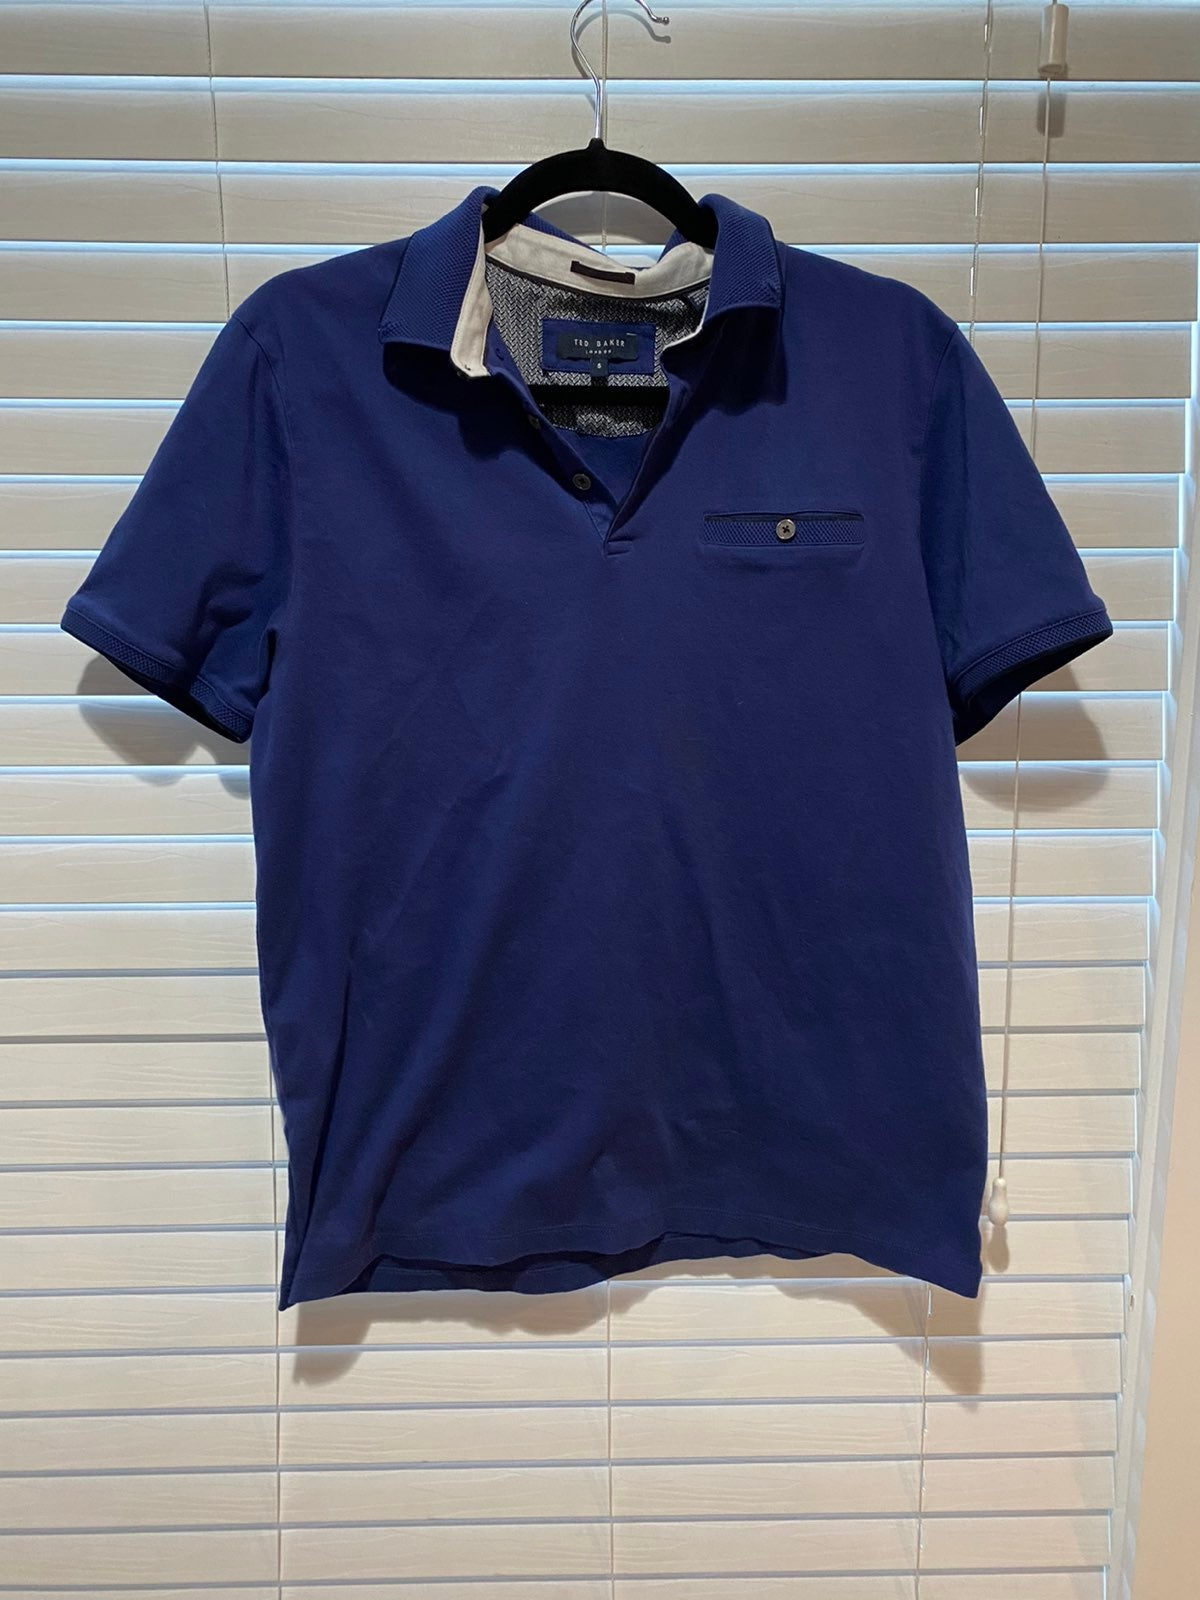 Ted Baker Polo Shirt - Size 5/L